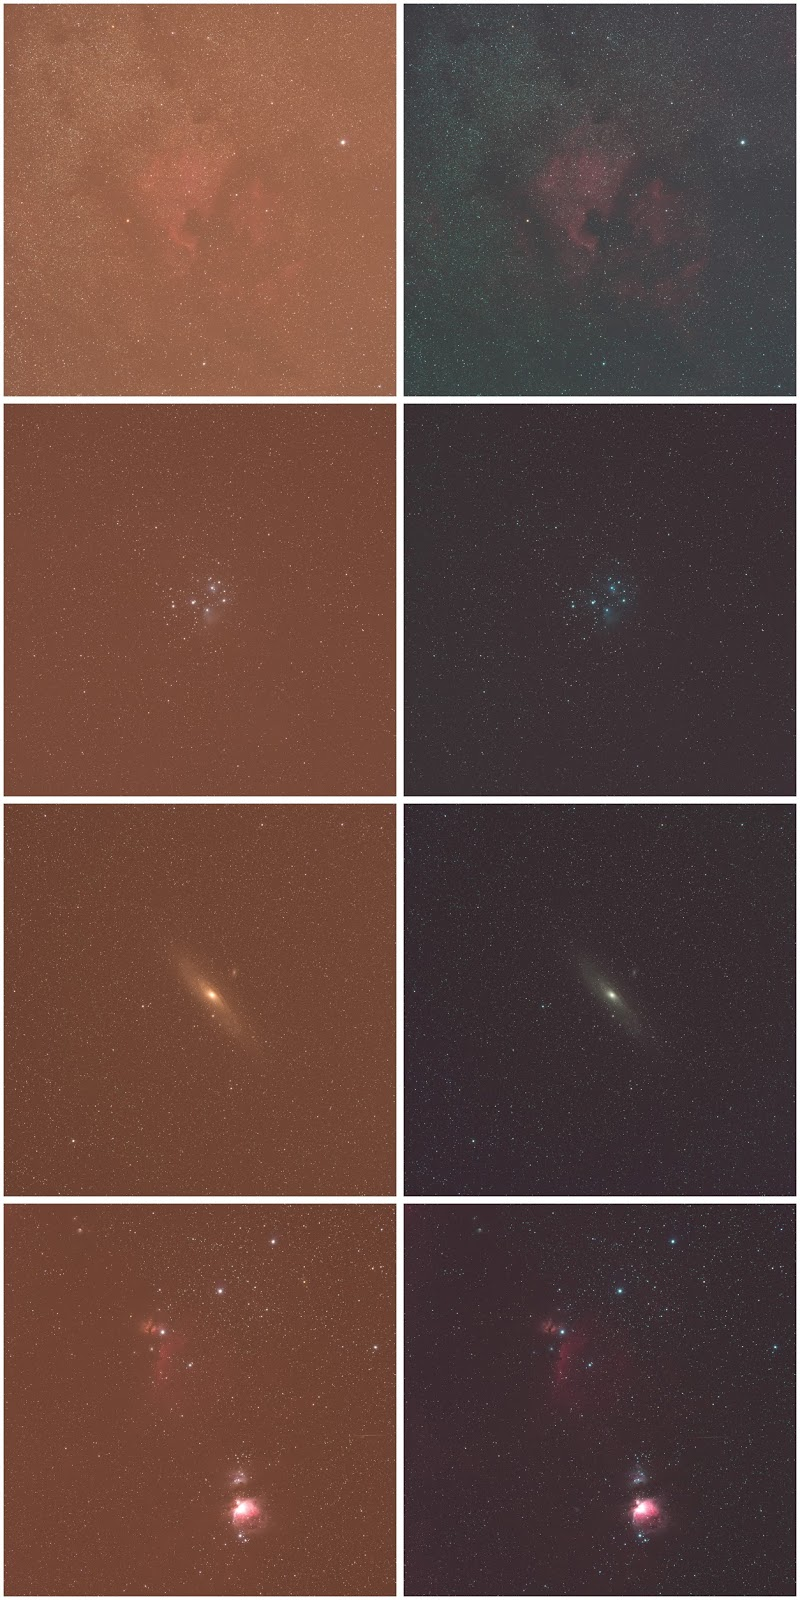 stc-astro-multispectra-before-after.jpg